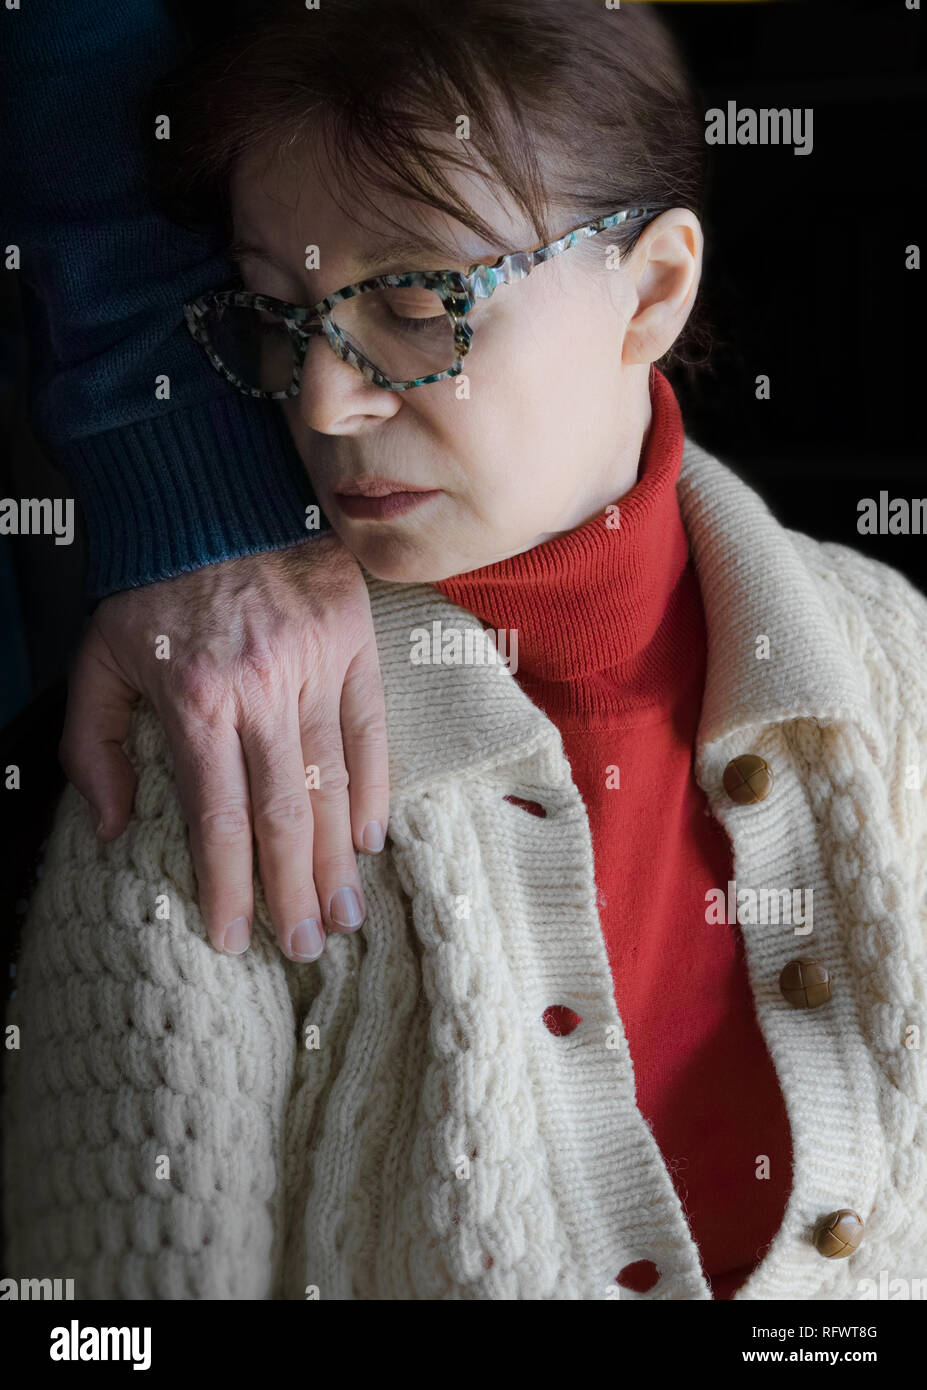 From the chiaroscuro comes the hand of a man resting on the shoulder of this woman who is sitting. She sadly turns her head towards that hand. Stock Photo